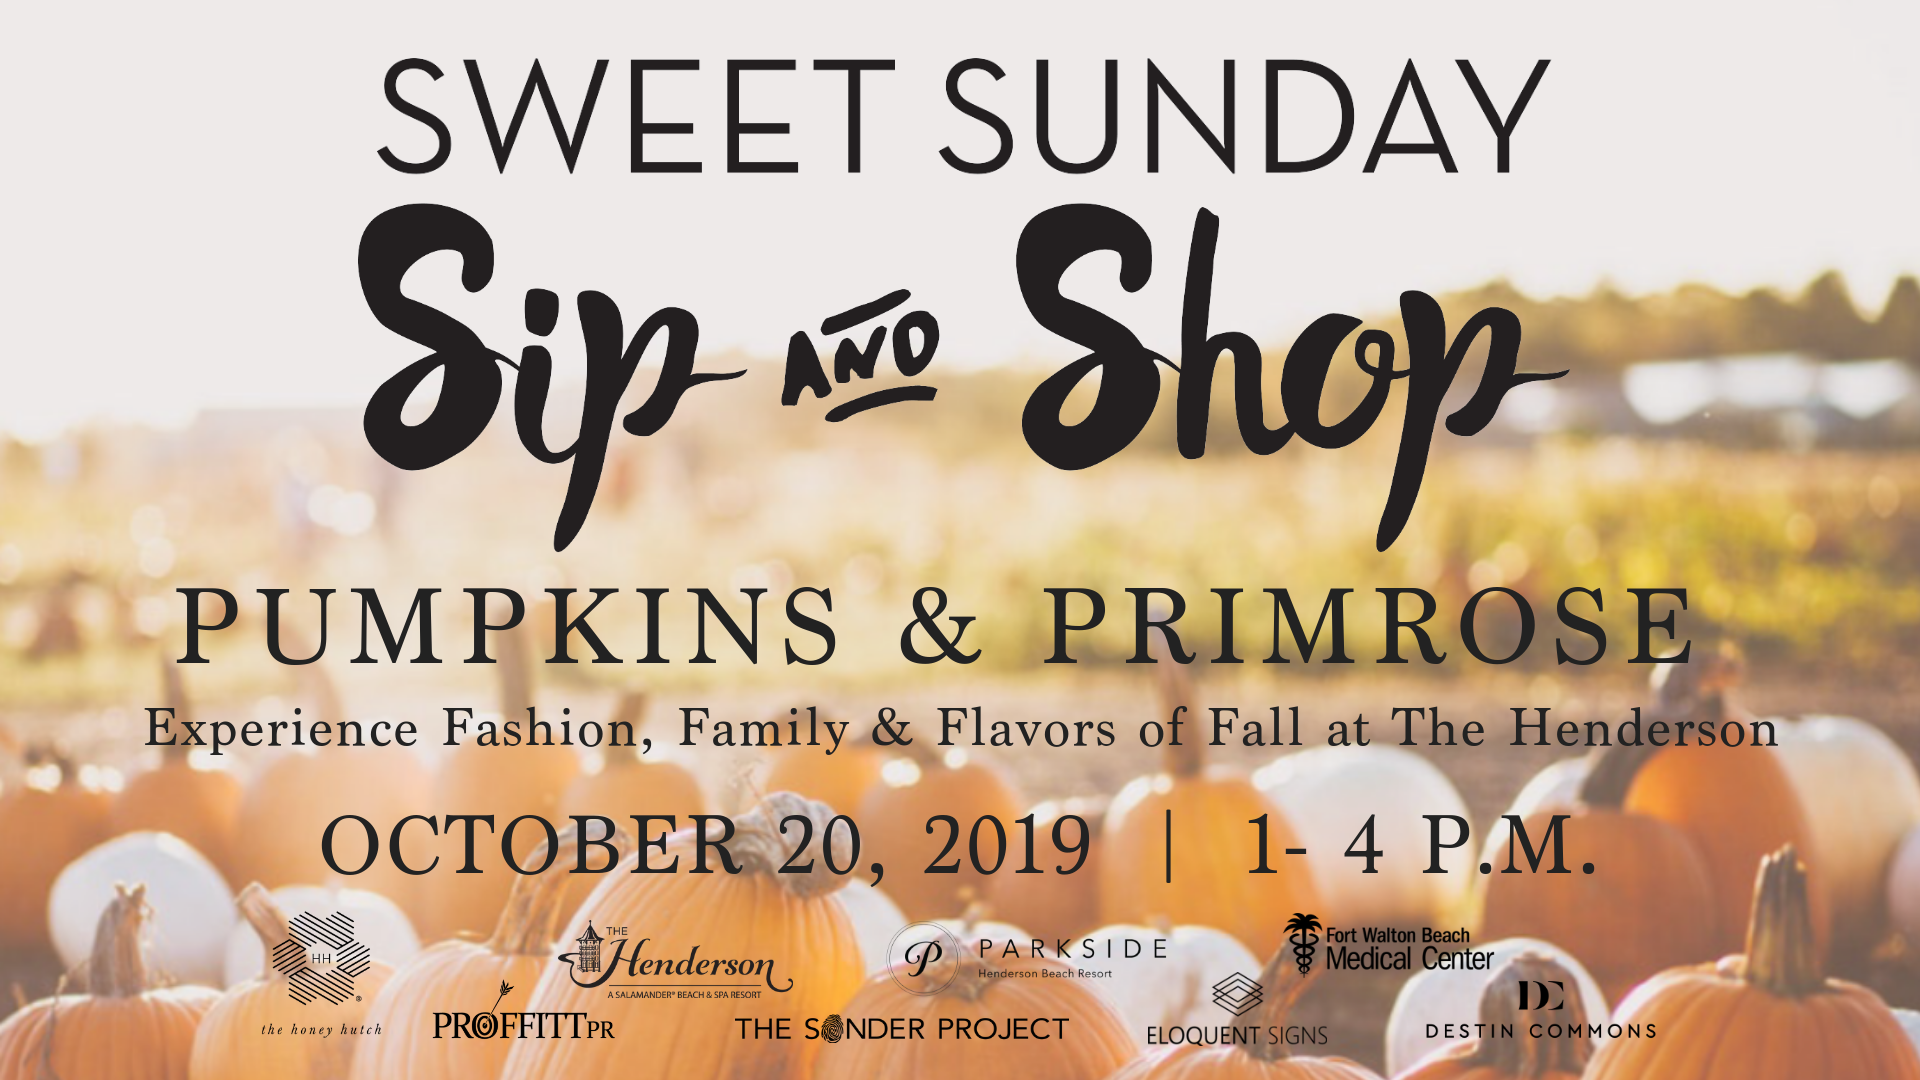 The Henderson Announces Third Sweet Sunday Event Showcasing Destins Newest Pumpkin Patch